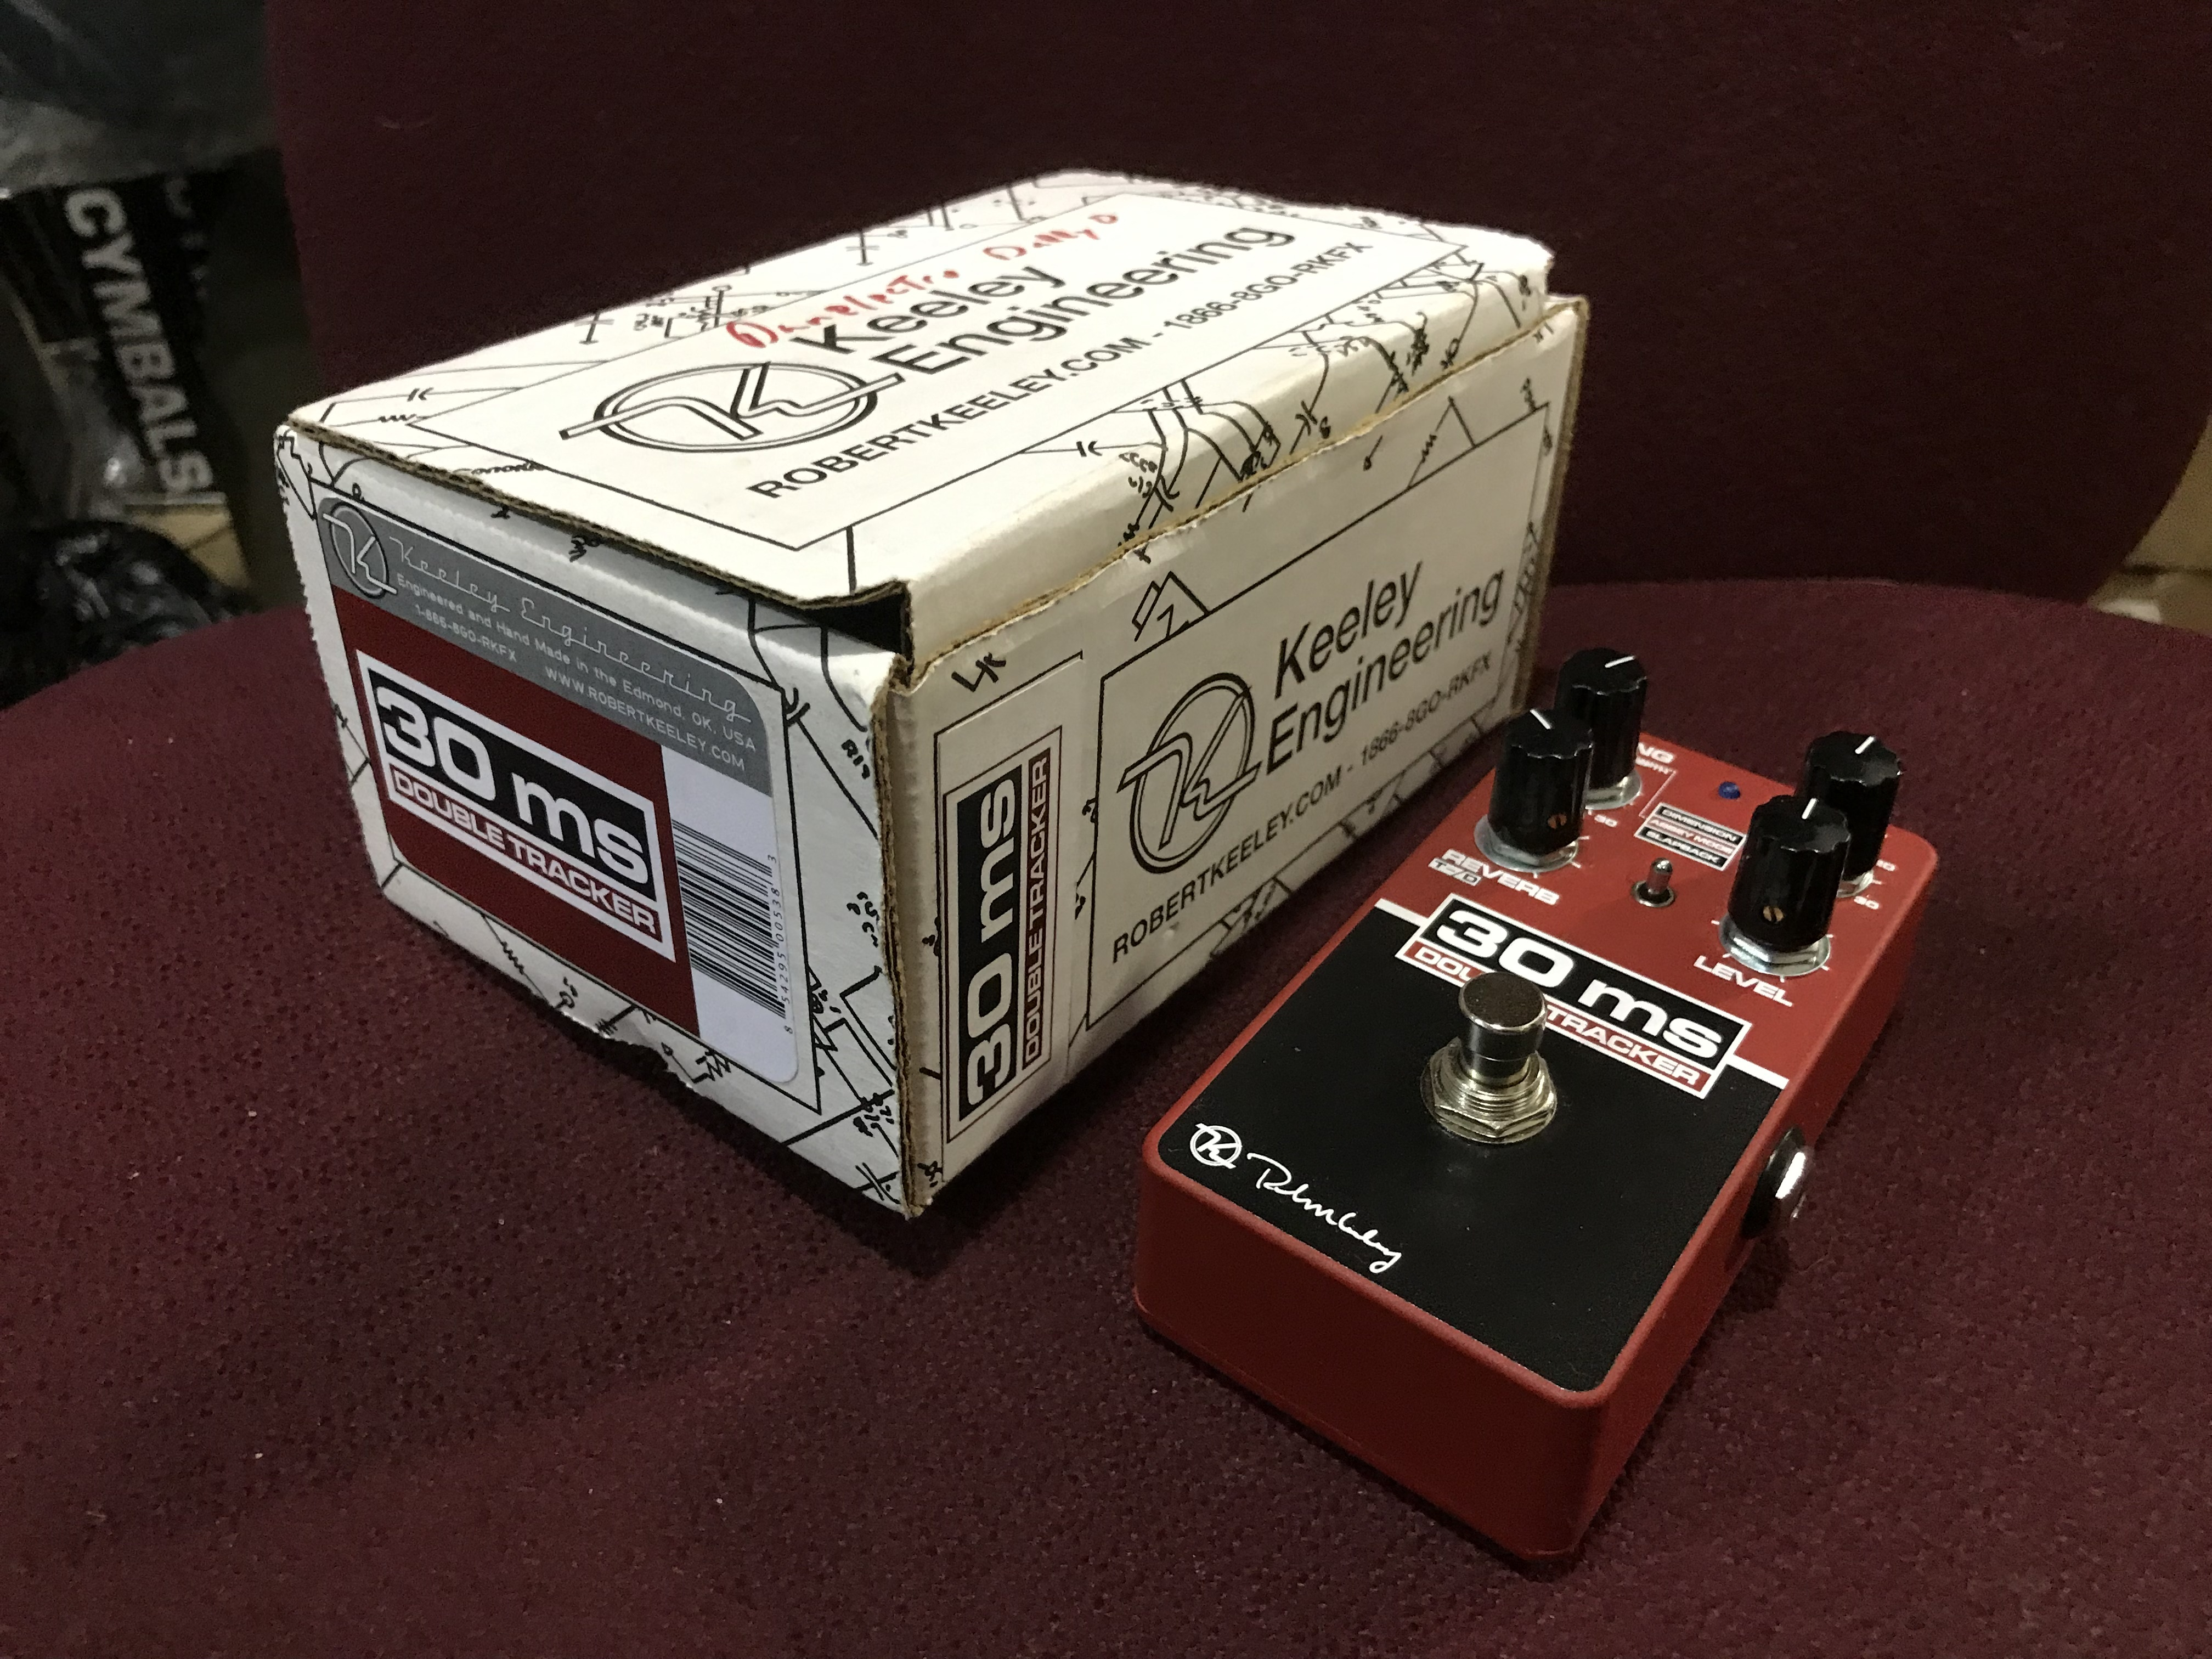 KEELEY 30MS AUTOMATIC DOUBLE TRACKER Delay/Reverb Effect Pedal